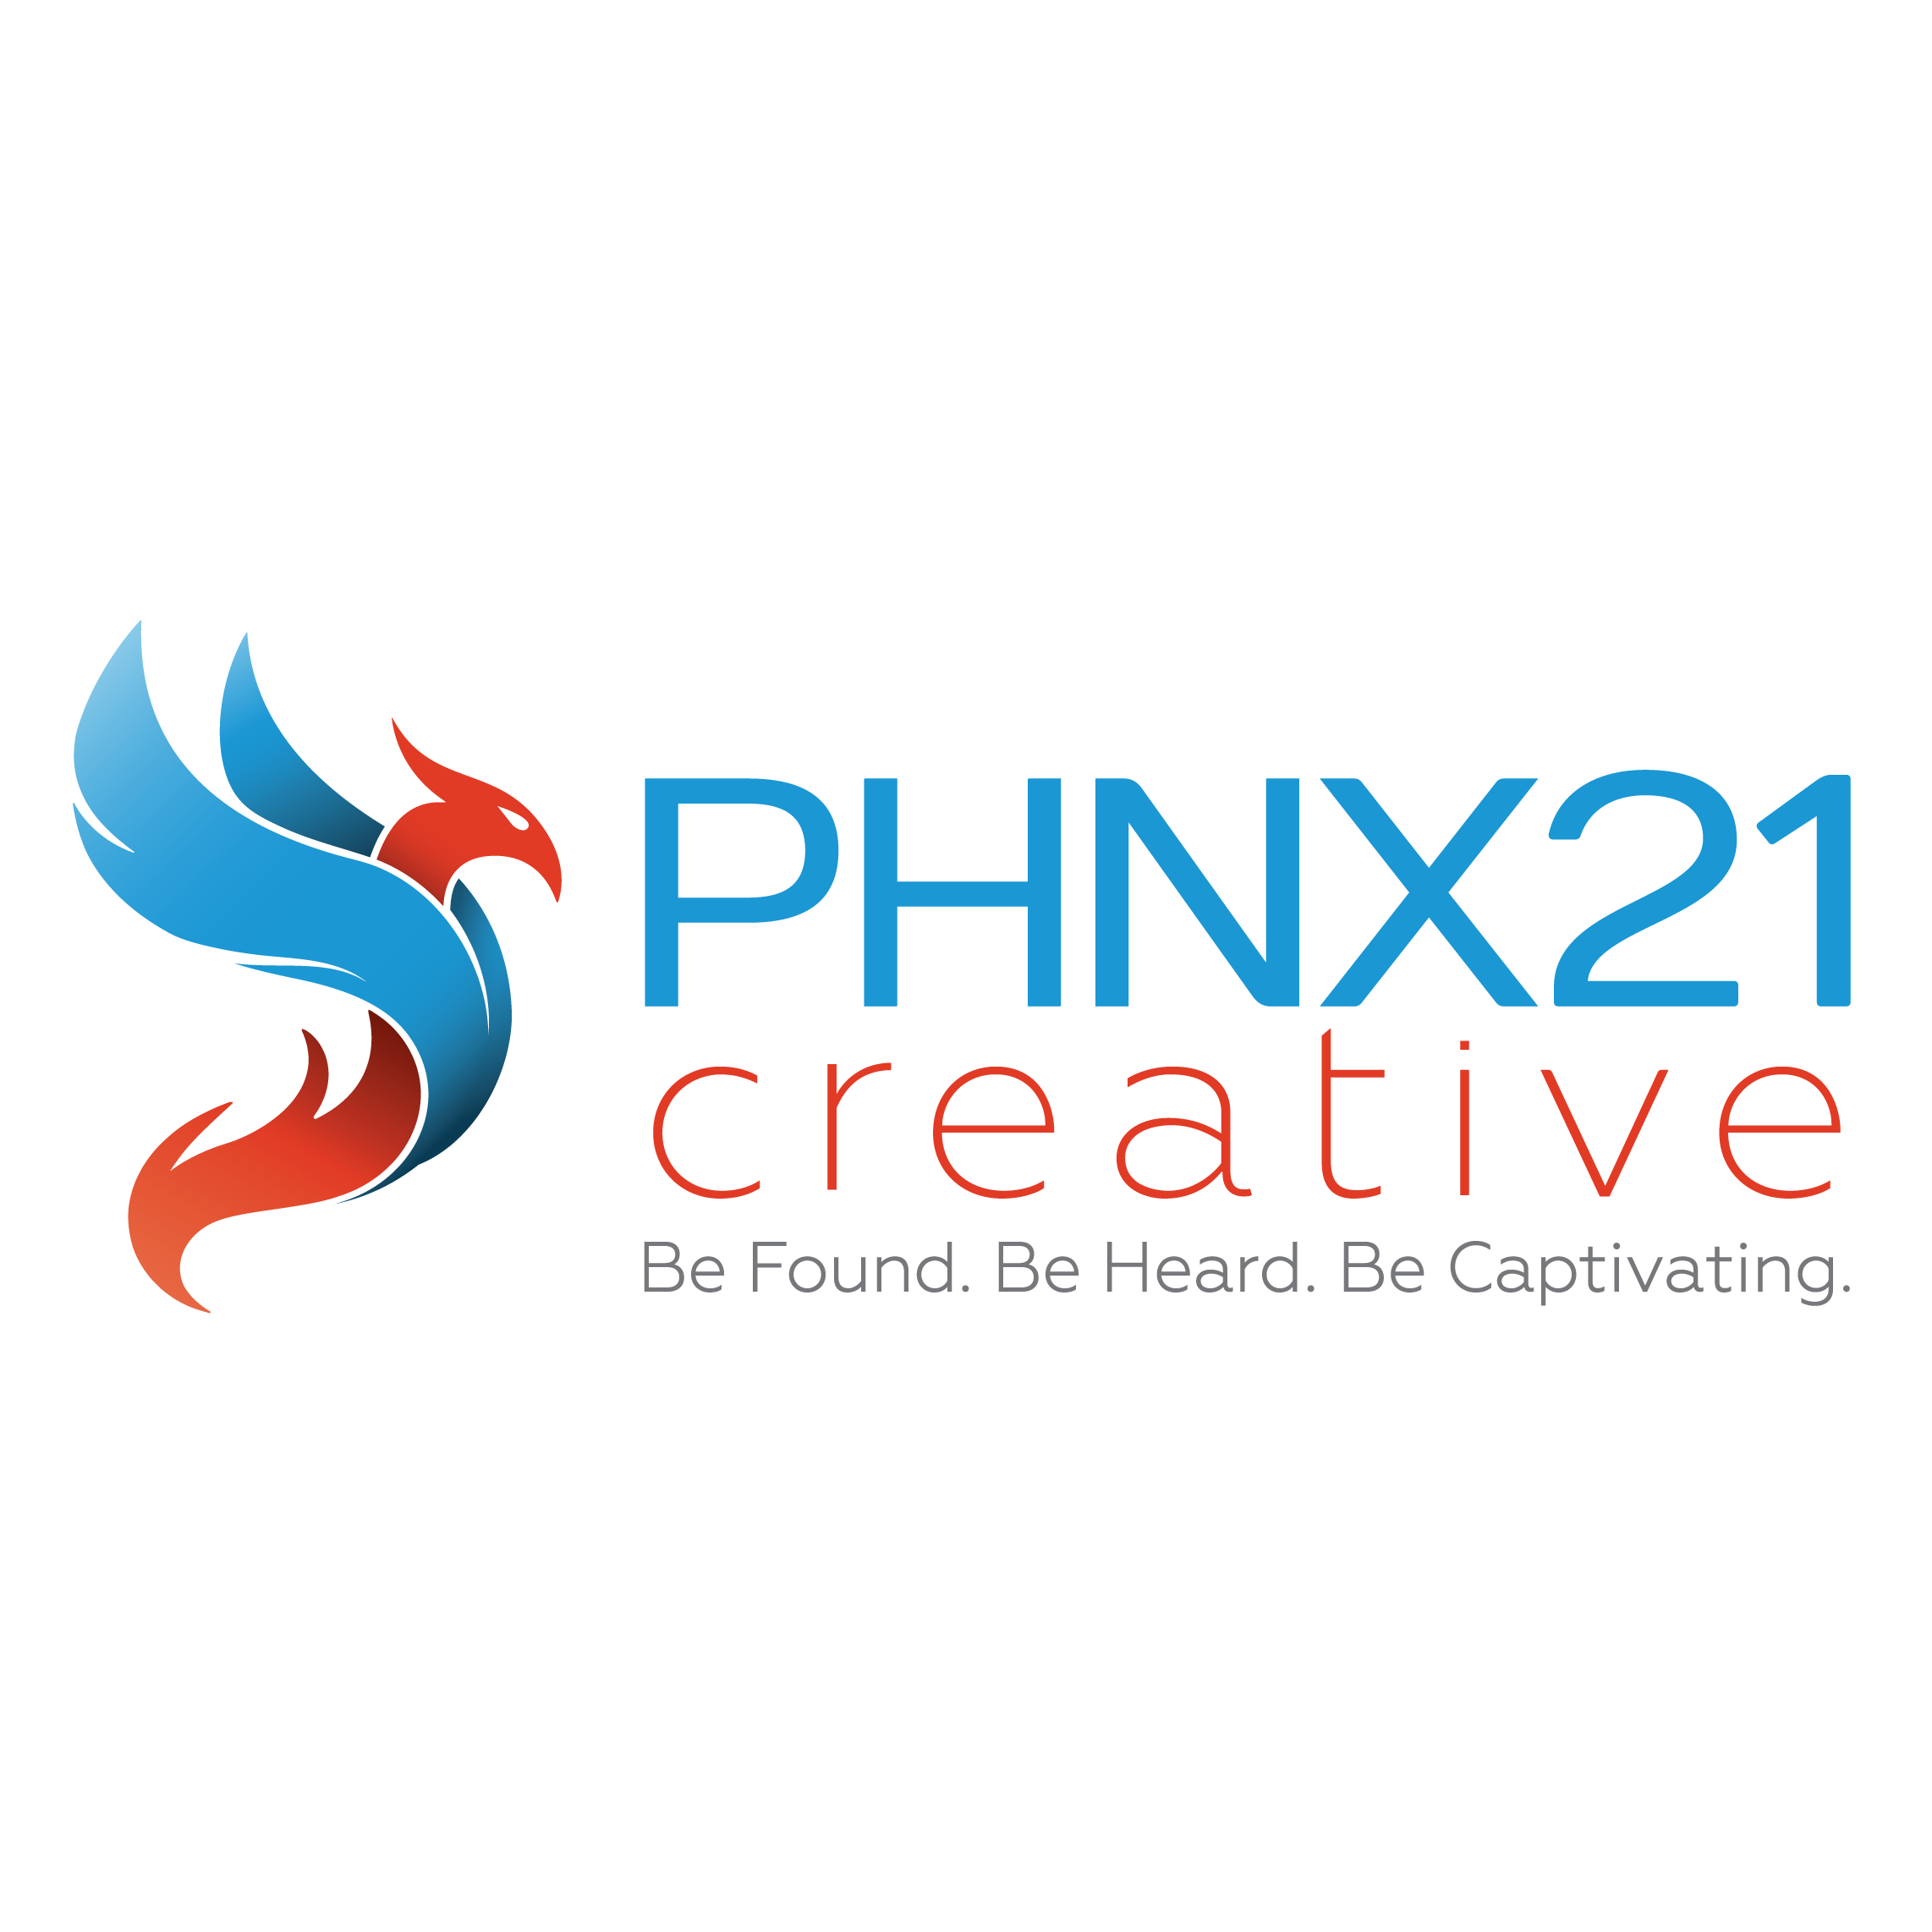 The PHNX21creative Agency